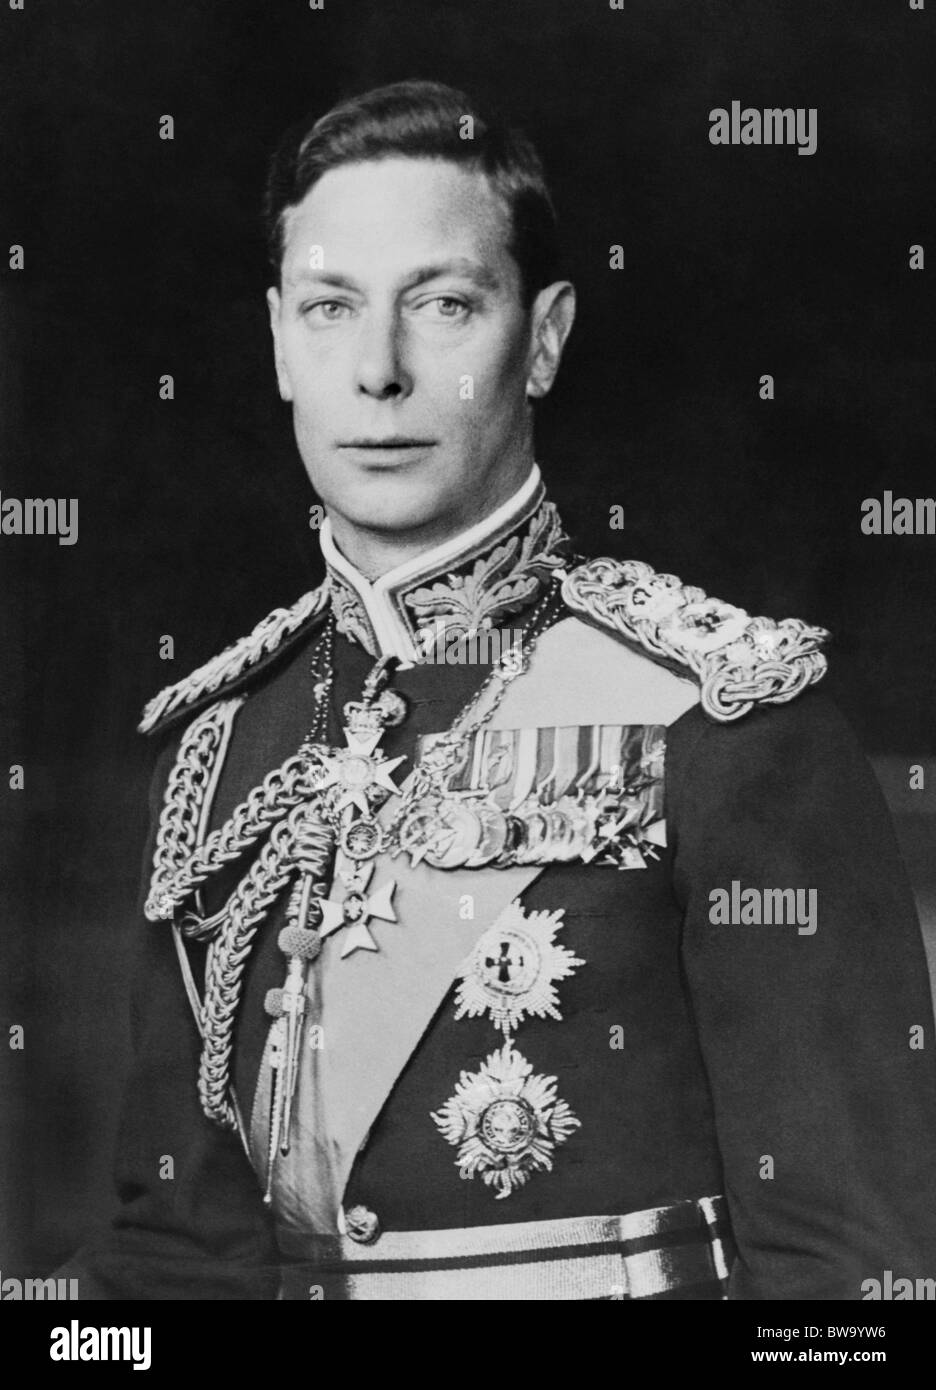 Portrait photo c1940s of George VI (1895 - 1952) - King of the United Kingdom from December 11 1936 until his death - Stock Image